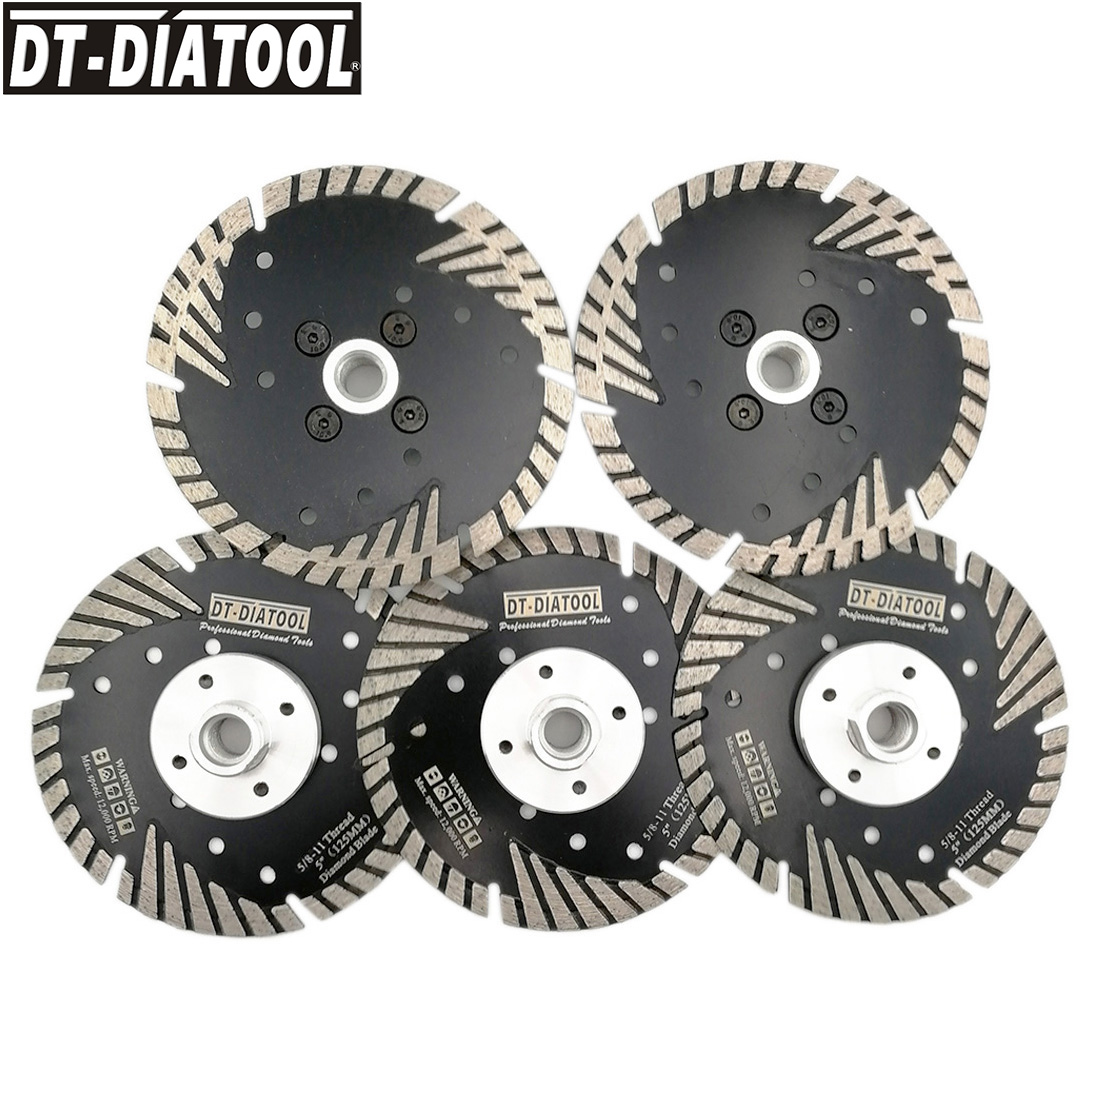 DT DIATOOL 5pcs 125mm 5inch Professional Quality Hot Pressed Diamond Cutting Discs Turbo Blade For Concrete